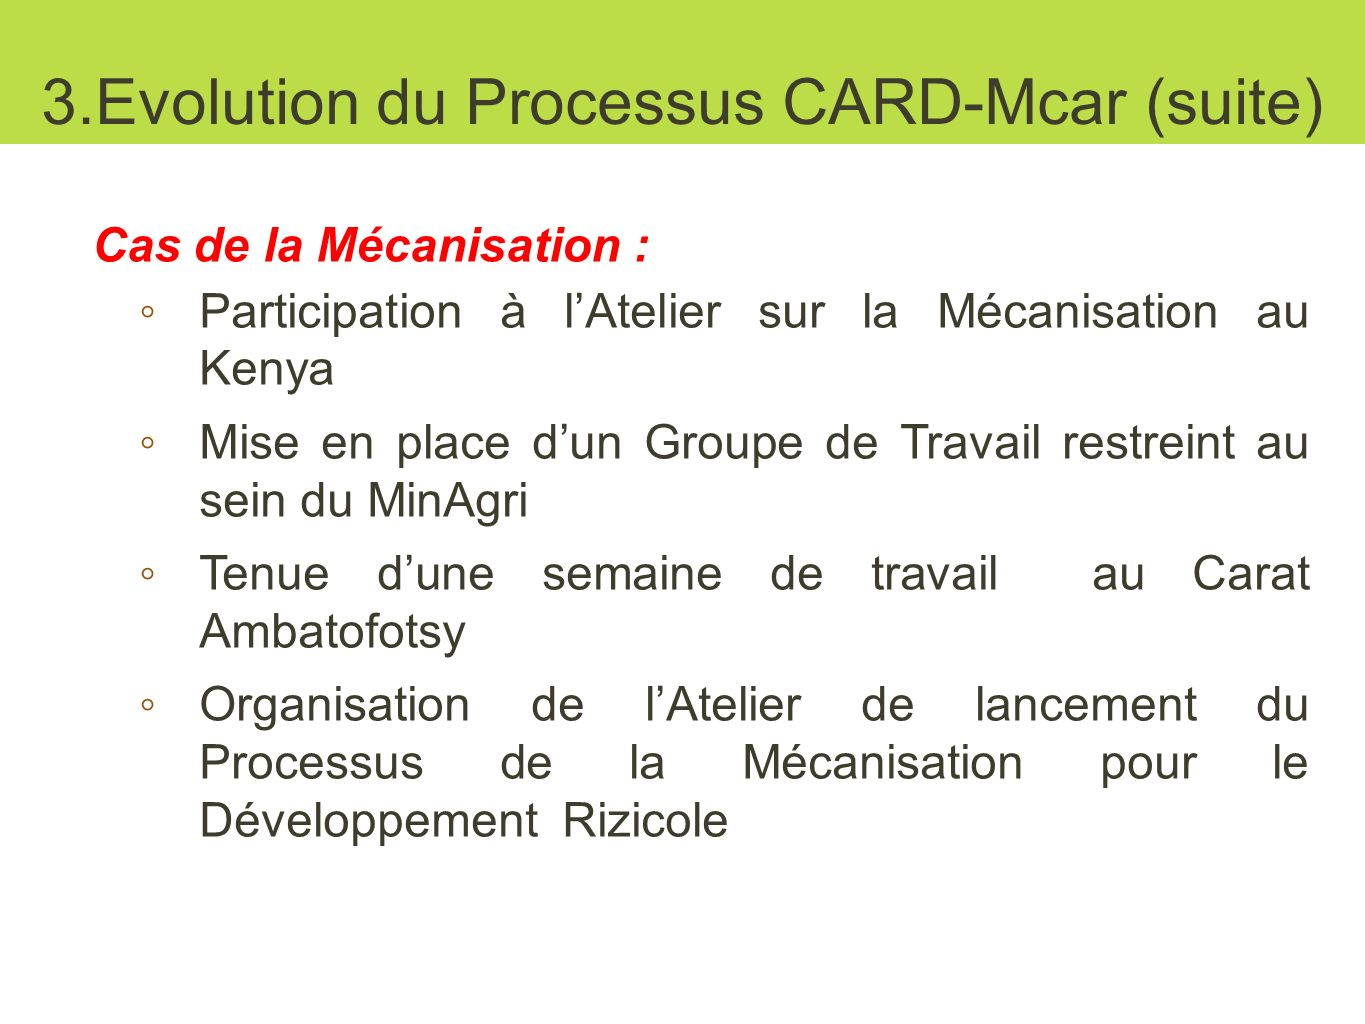 3.Evolution du Processus CARD-Mcar (suite)